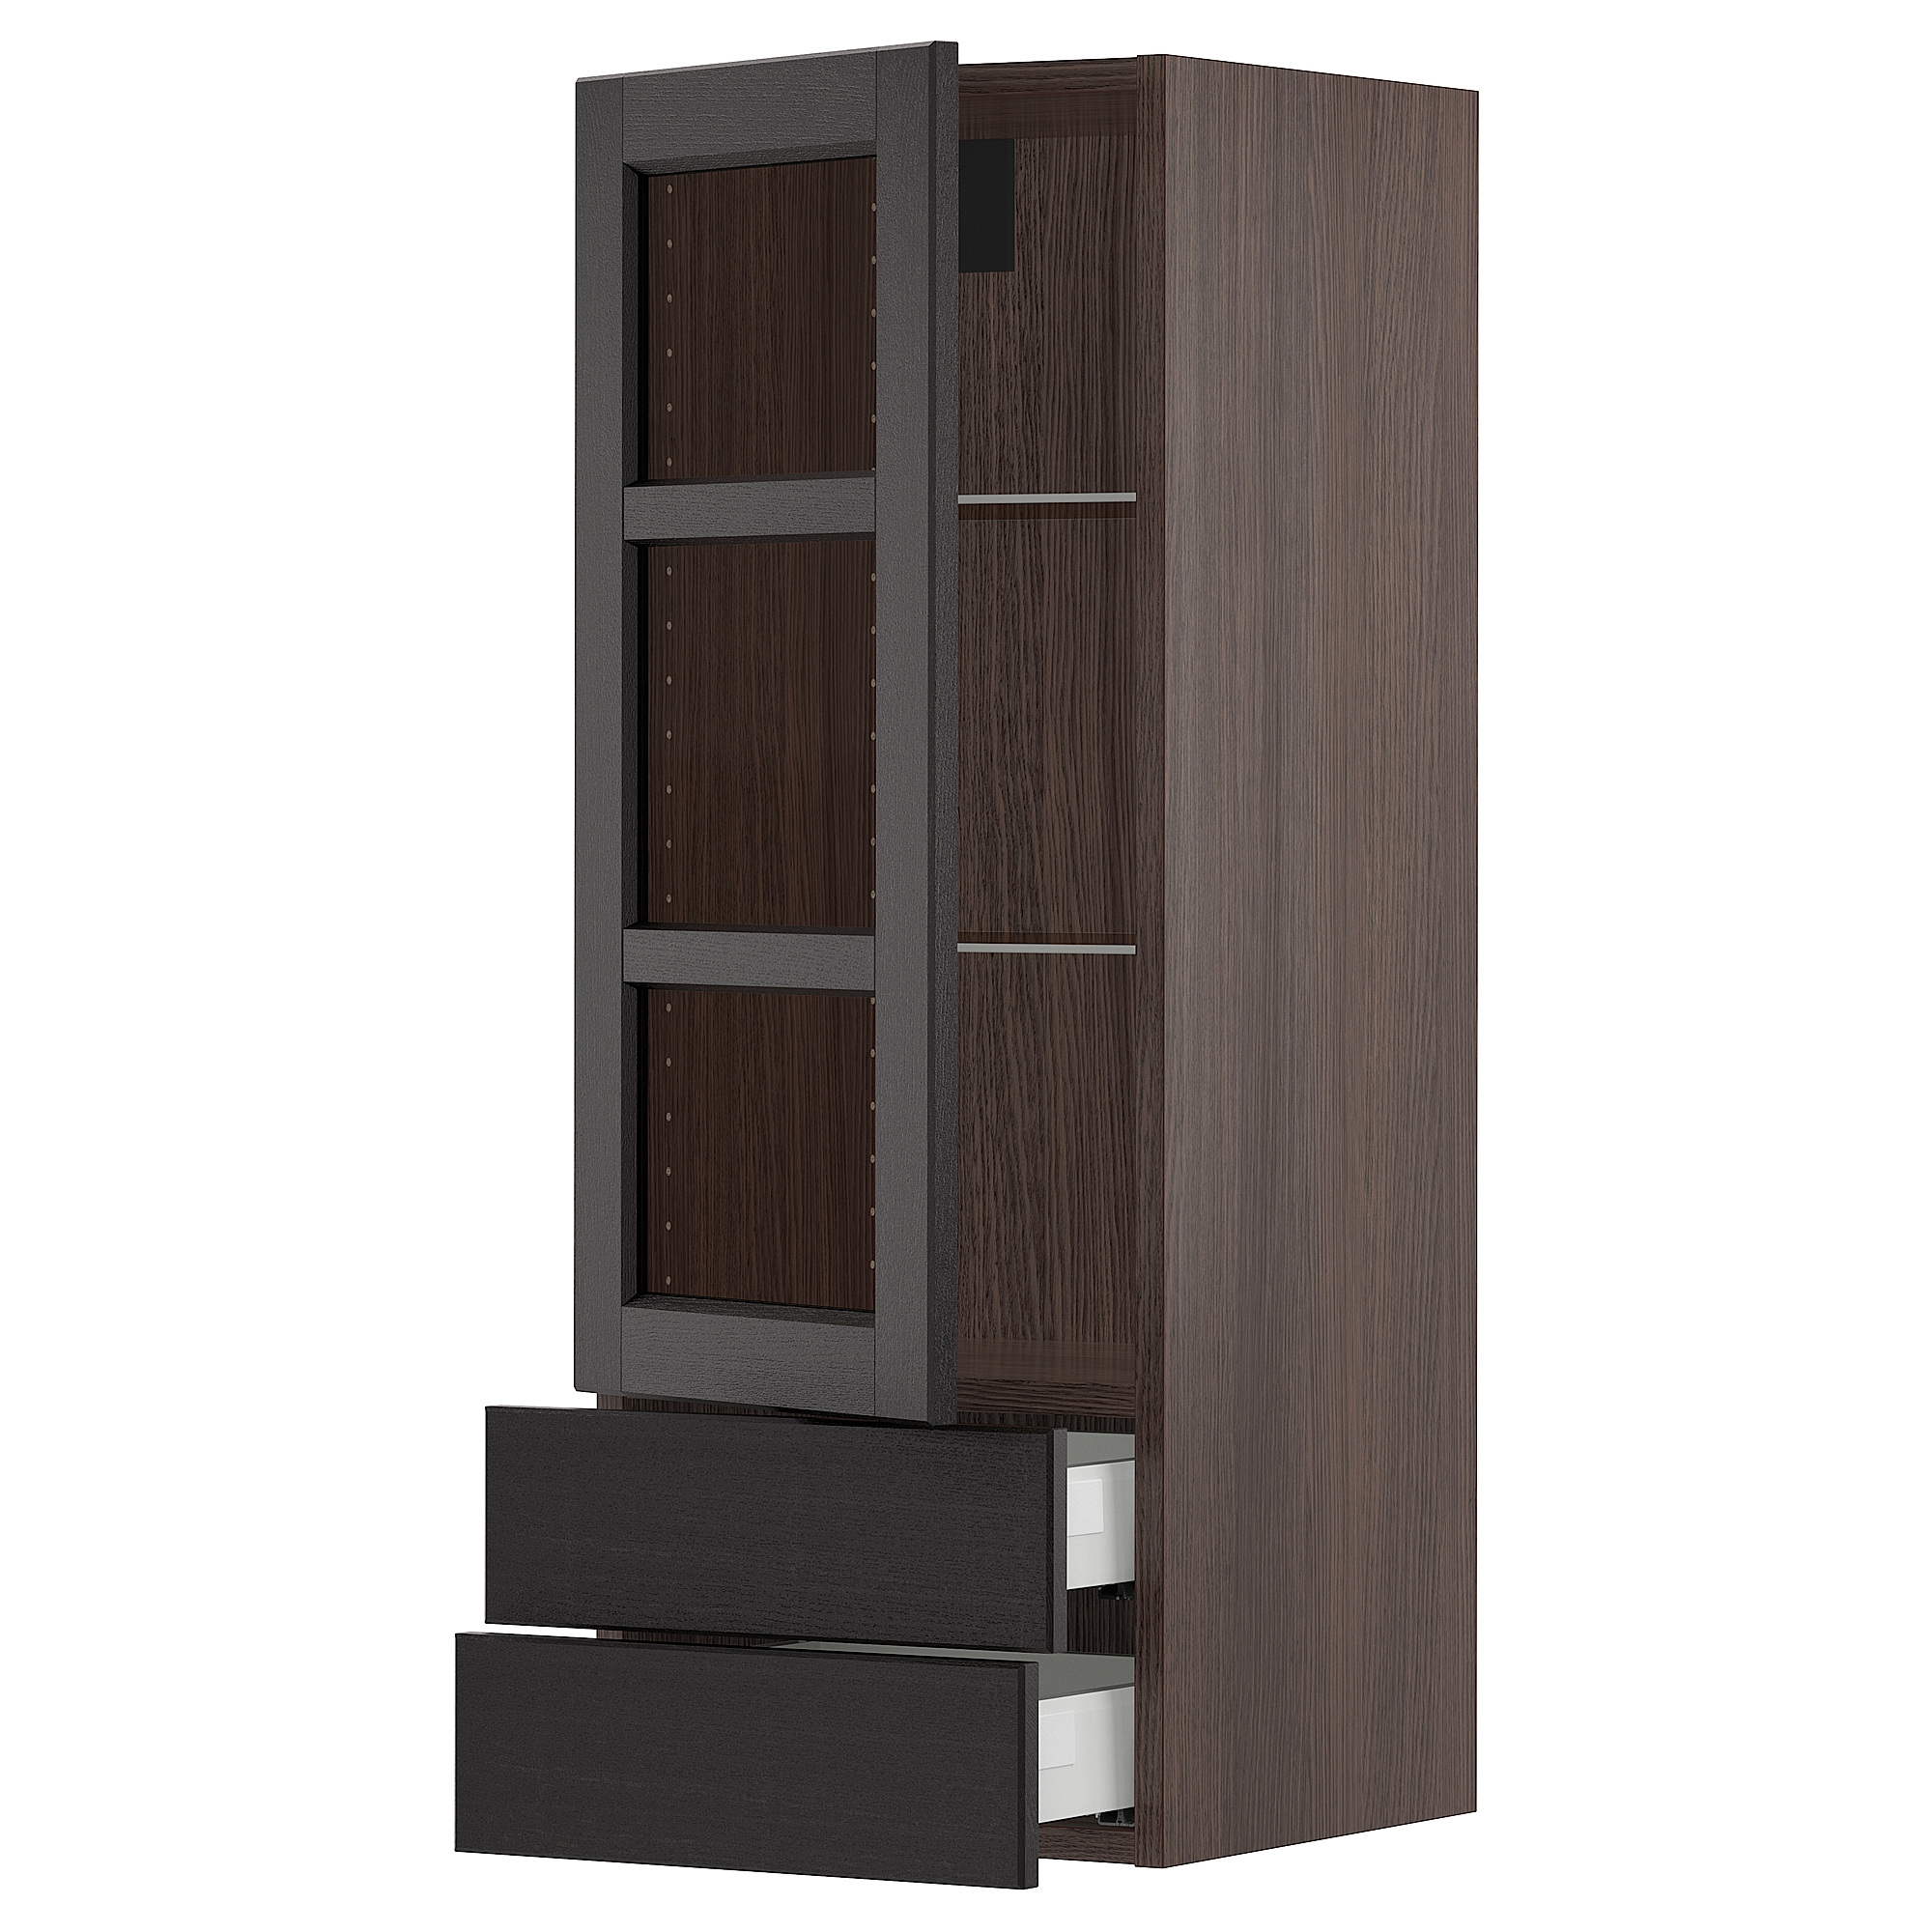 SEKTION armario pared prt vidrio/2 cajones